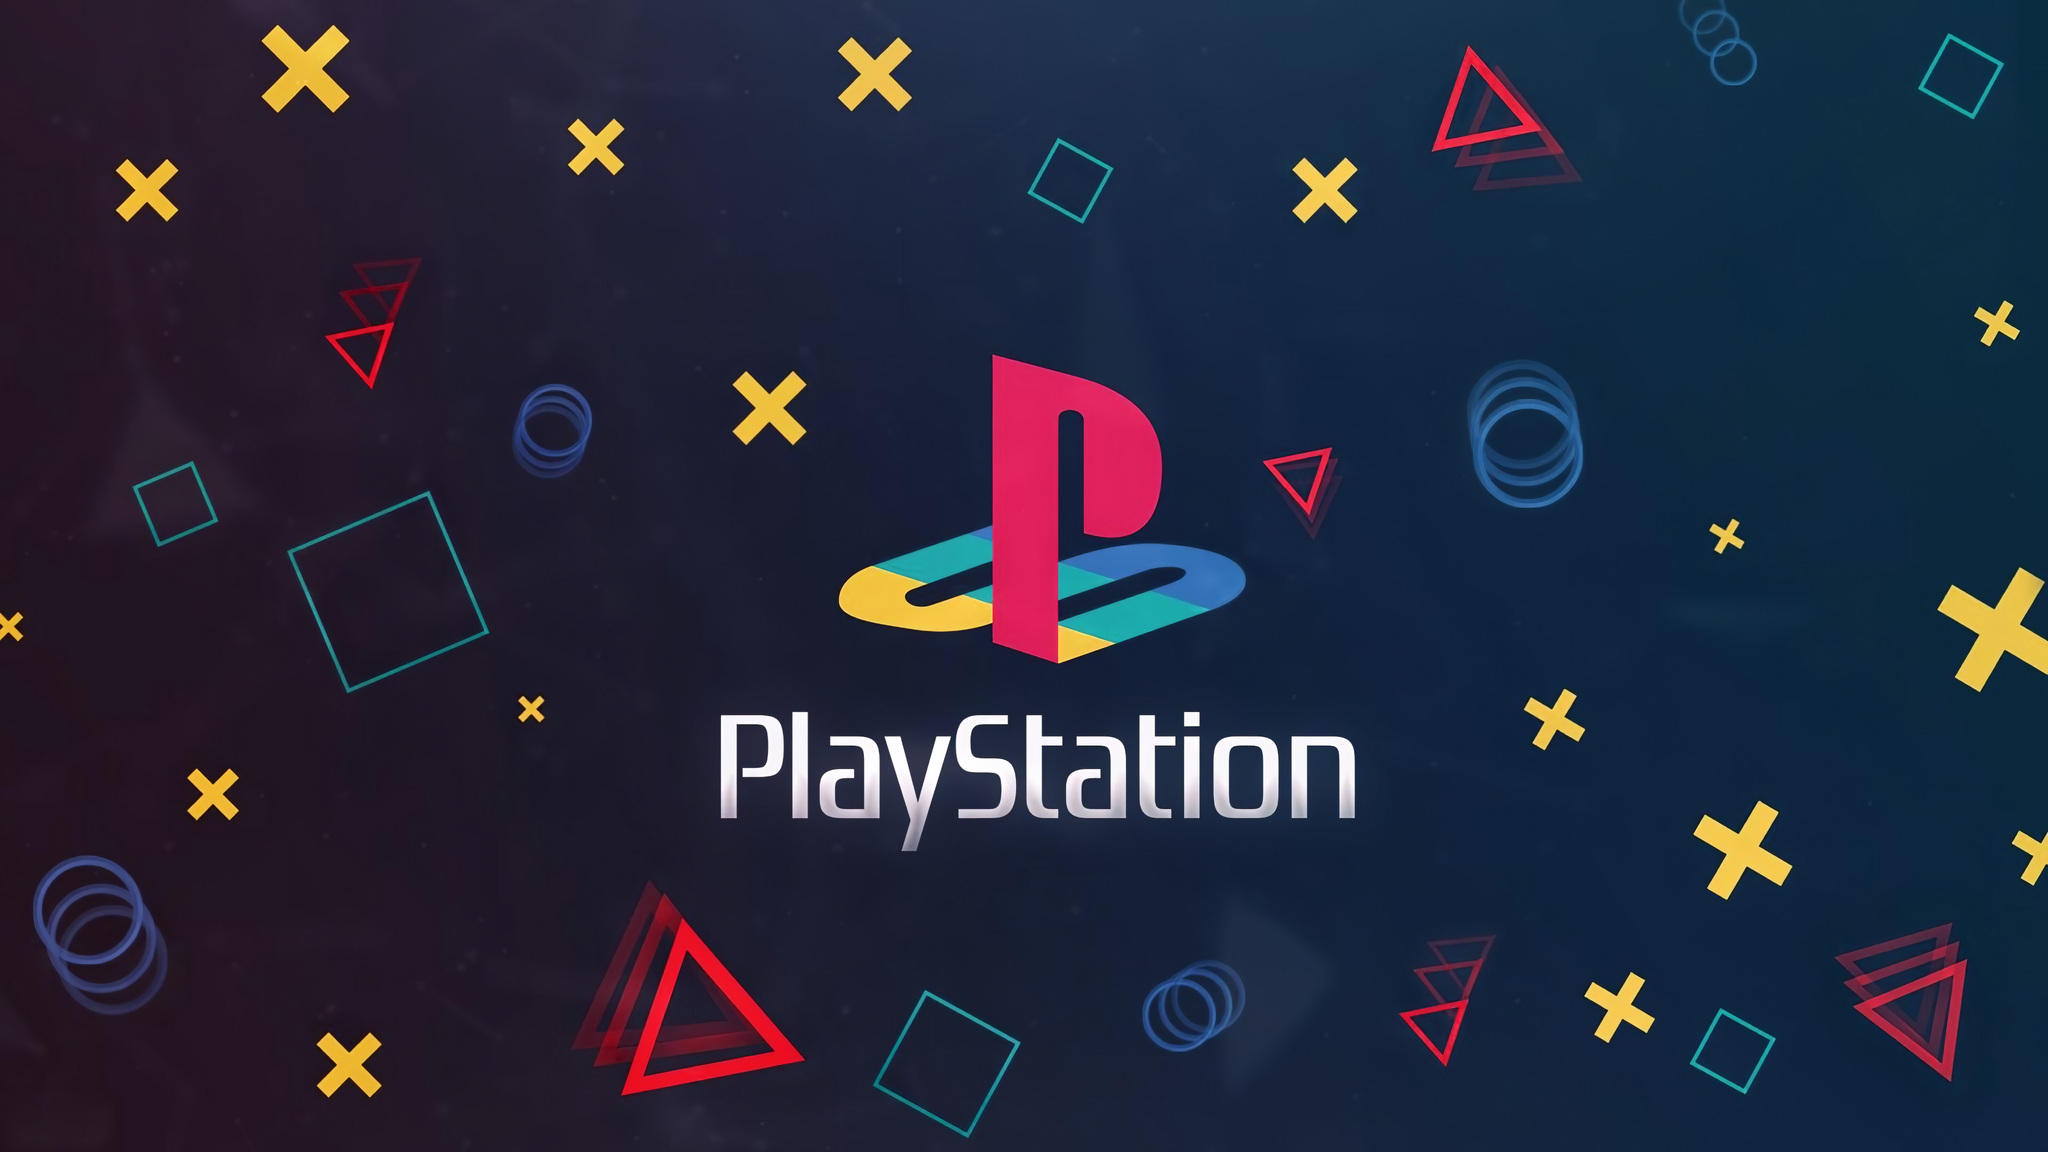 2048x1152 Playstation Logo Background 4k 2048x1152 Resolution Hd 4k Wallpapers Images Backgrounds Photos And Pictures